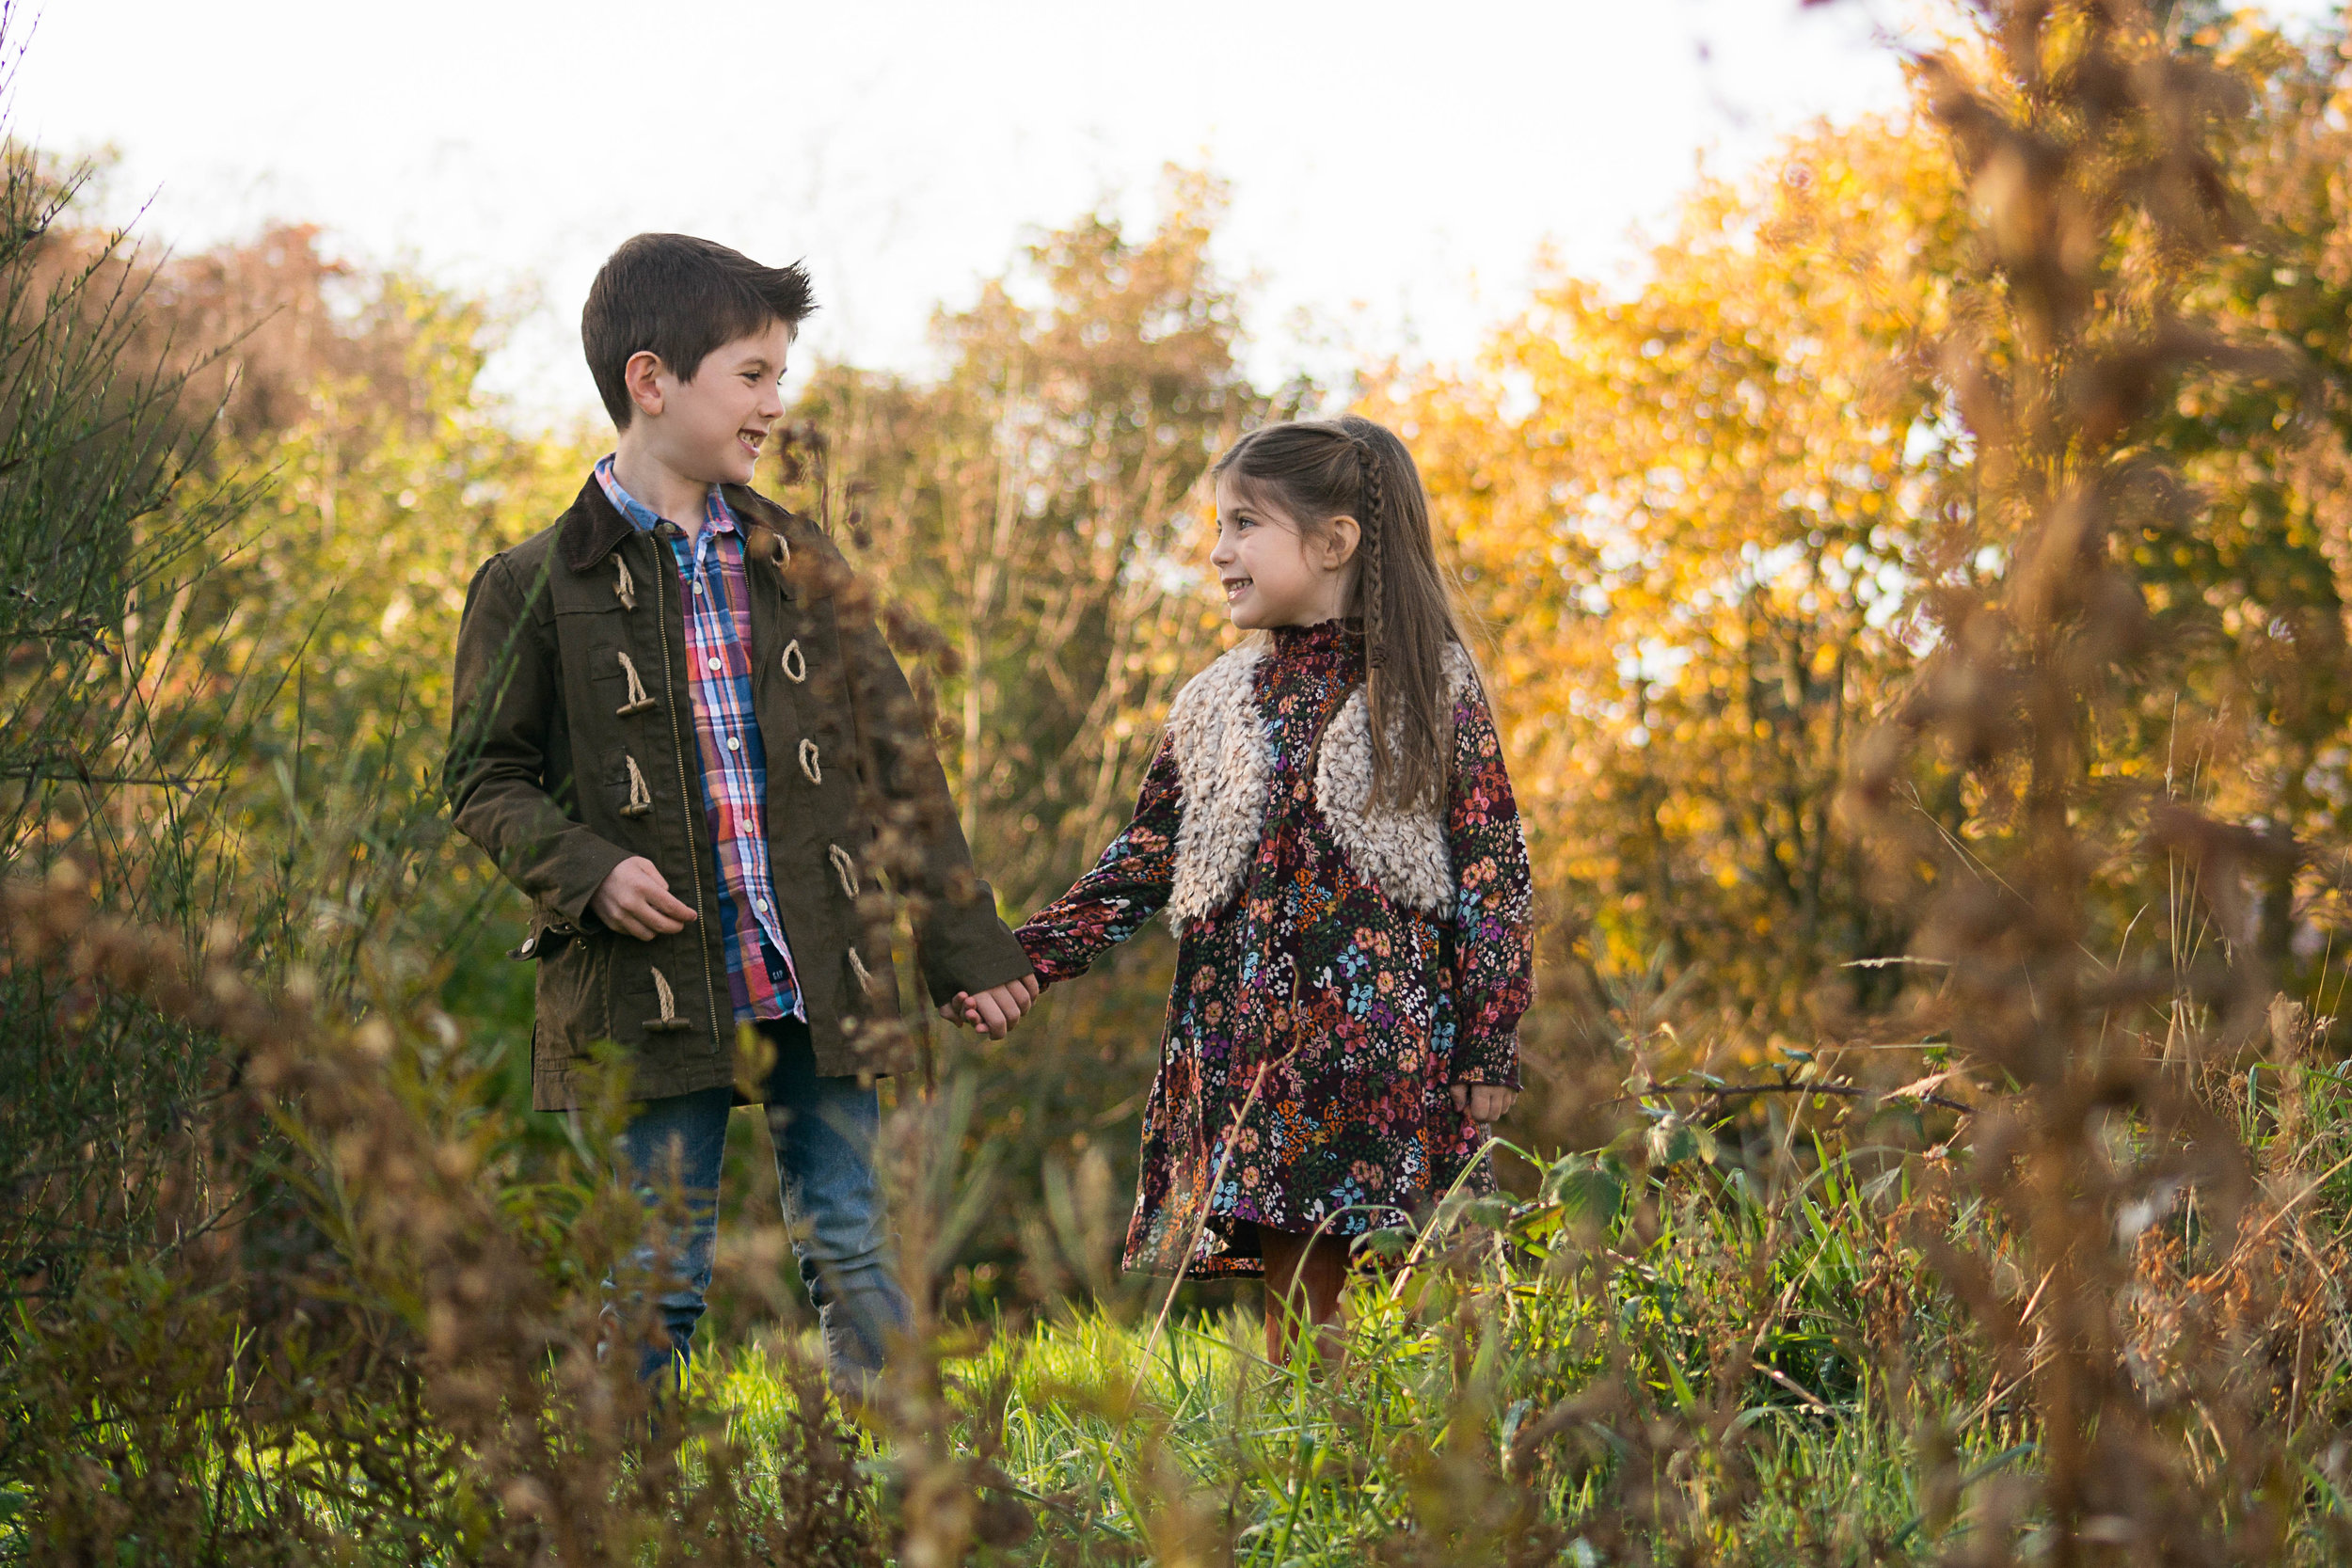 sibling shot - family - photographs - outdoors - paisley